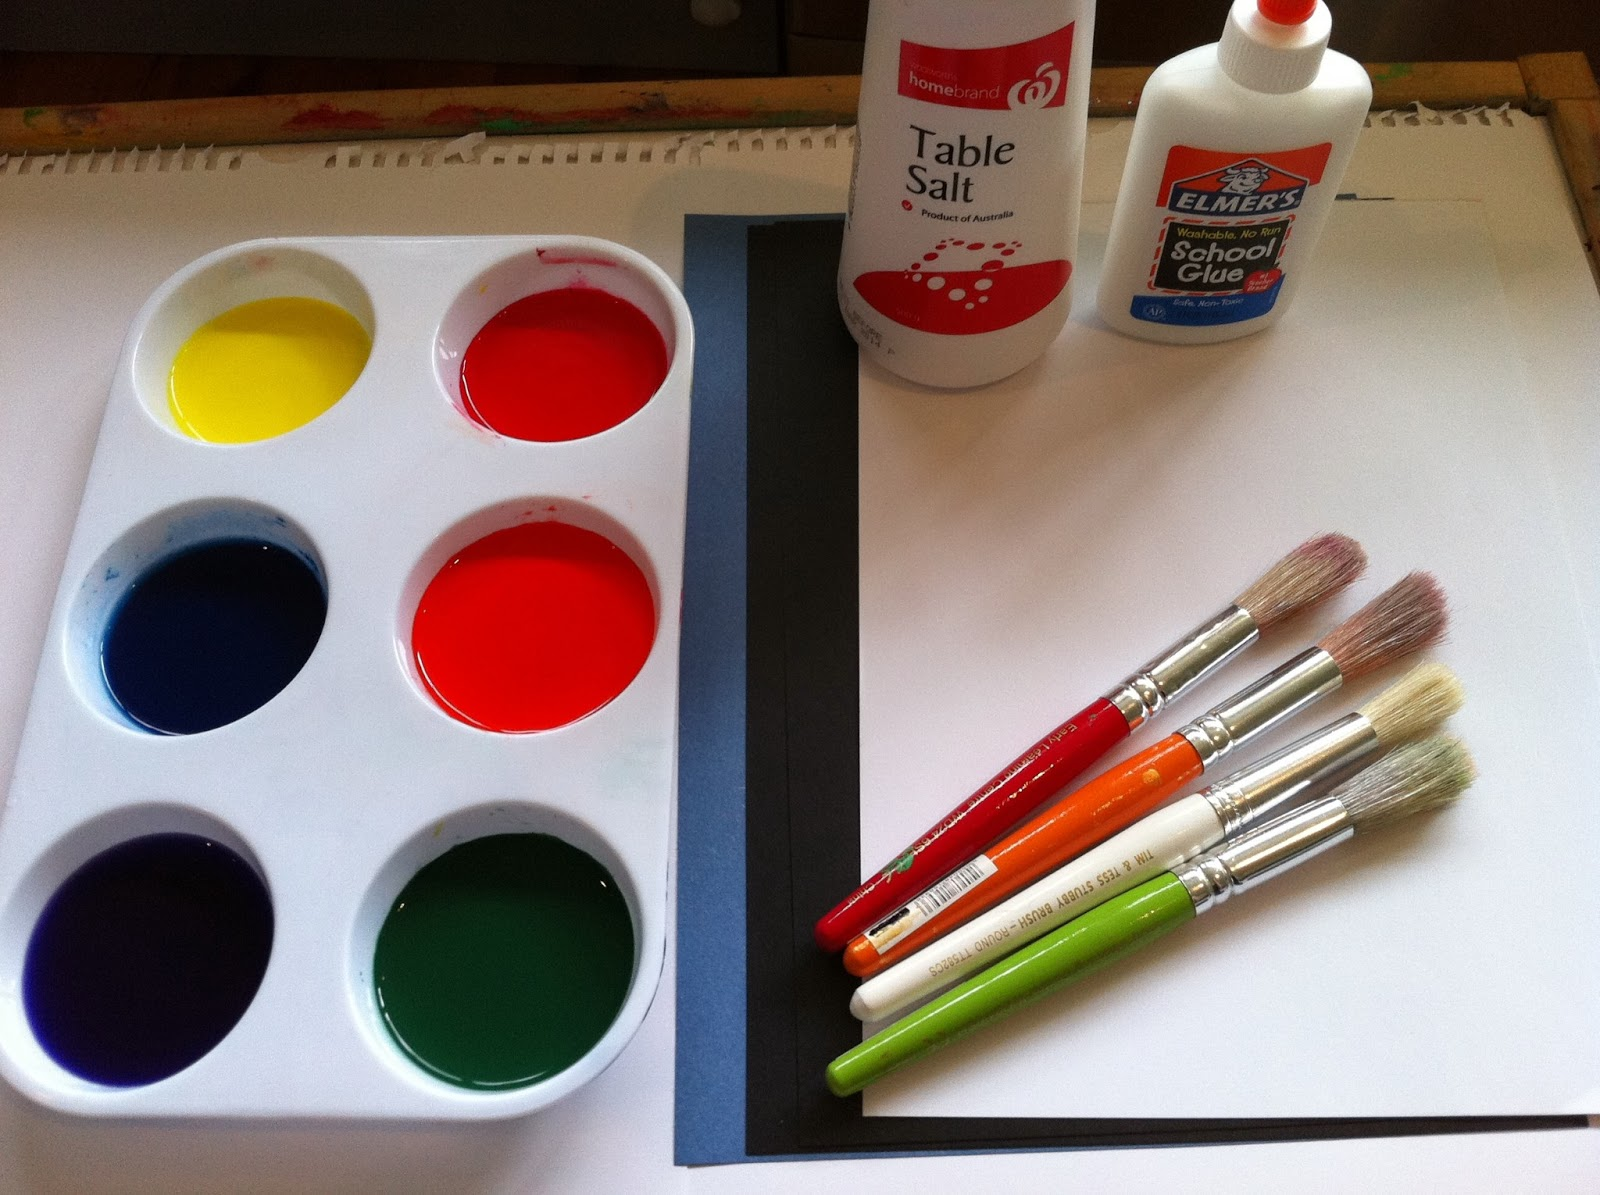 Paintbrushes That Can Be Used On Food